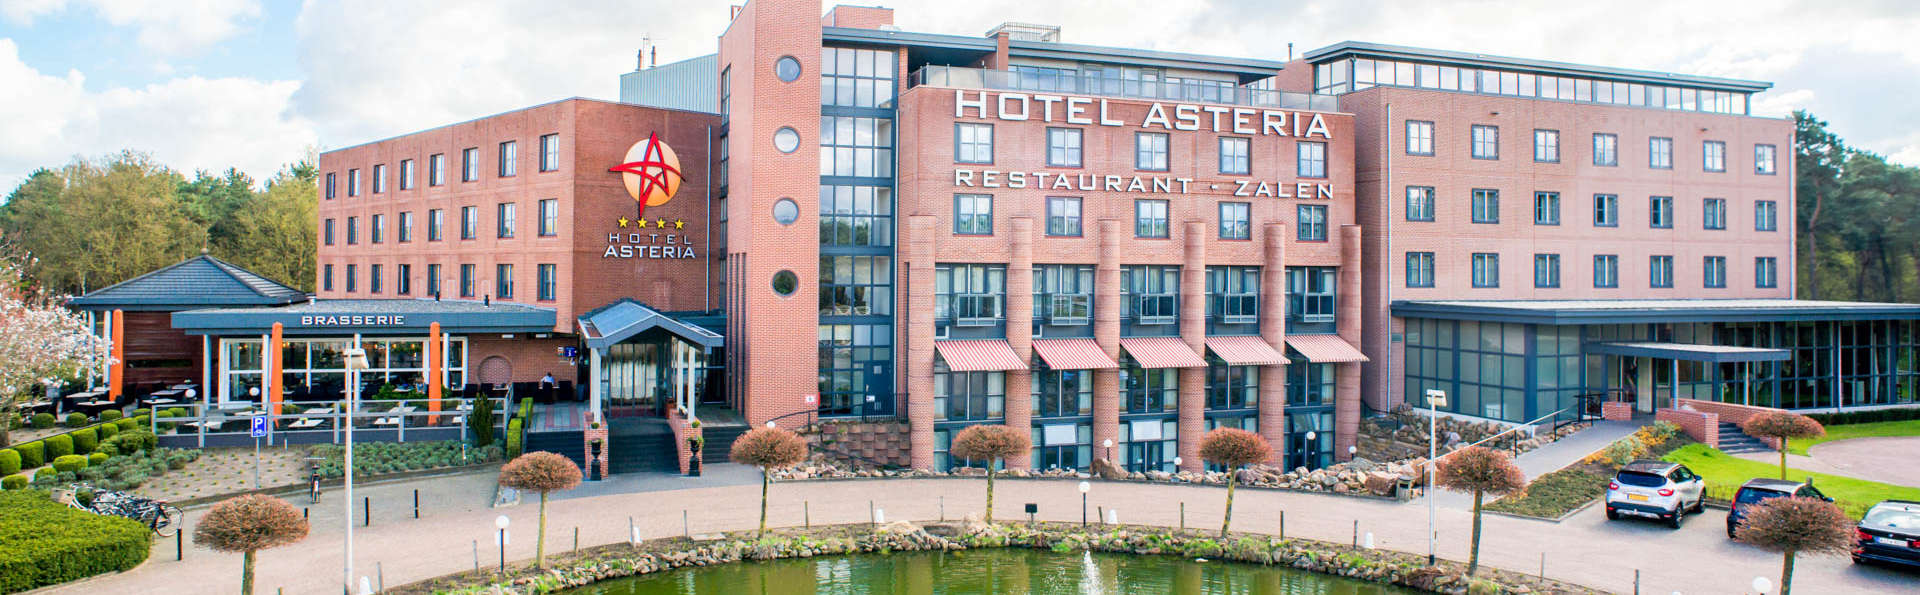 Hotel Asteria - EDIT_NEW_FRONT.jpg